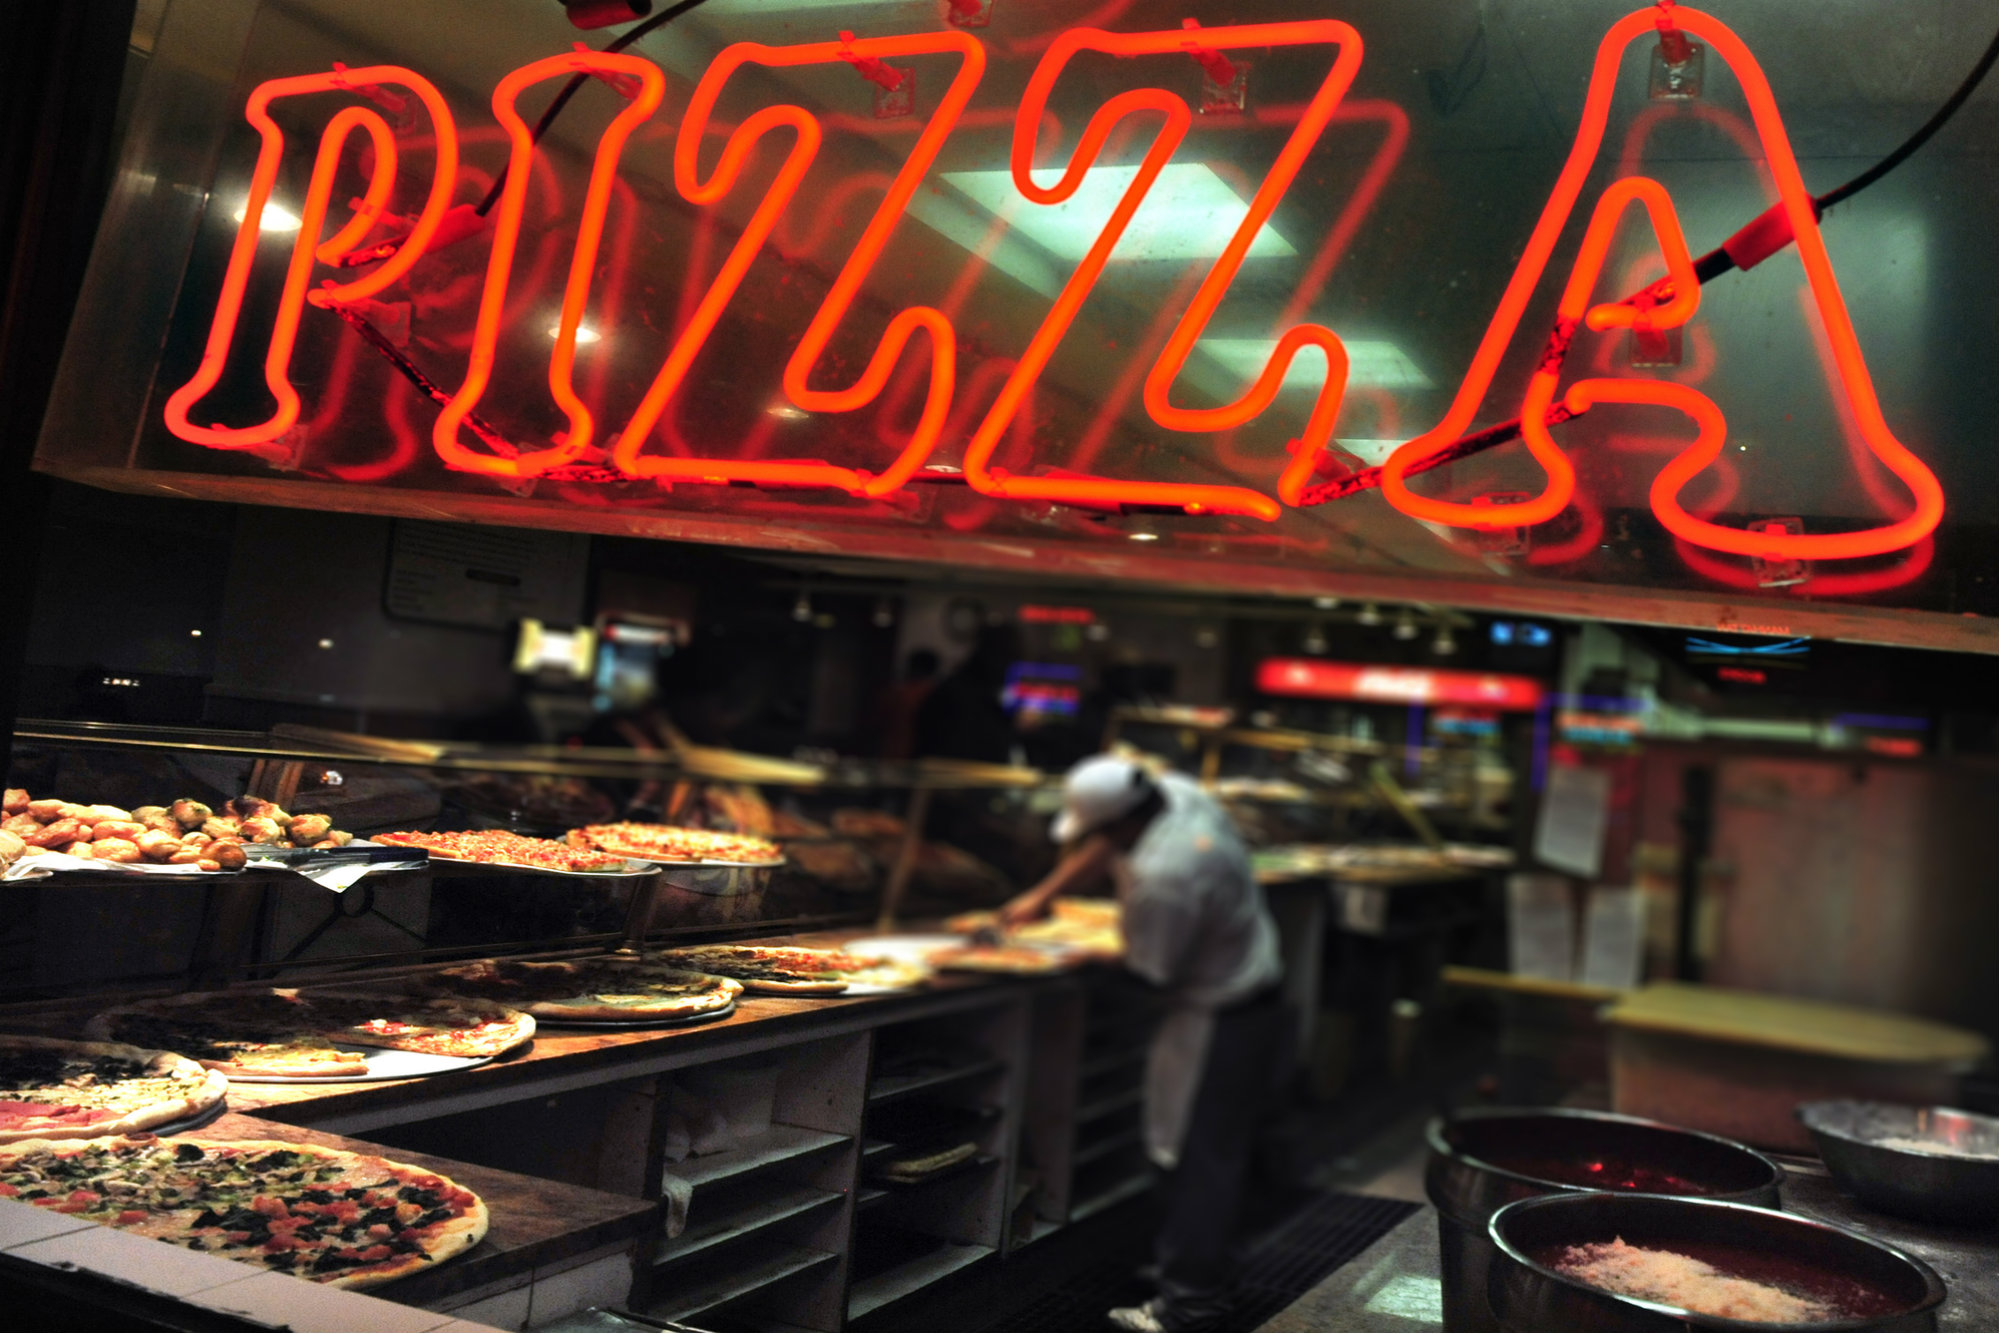 Mercado de pizzarias: quais as oportunidades e desafios desse ramo?